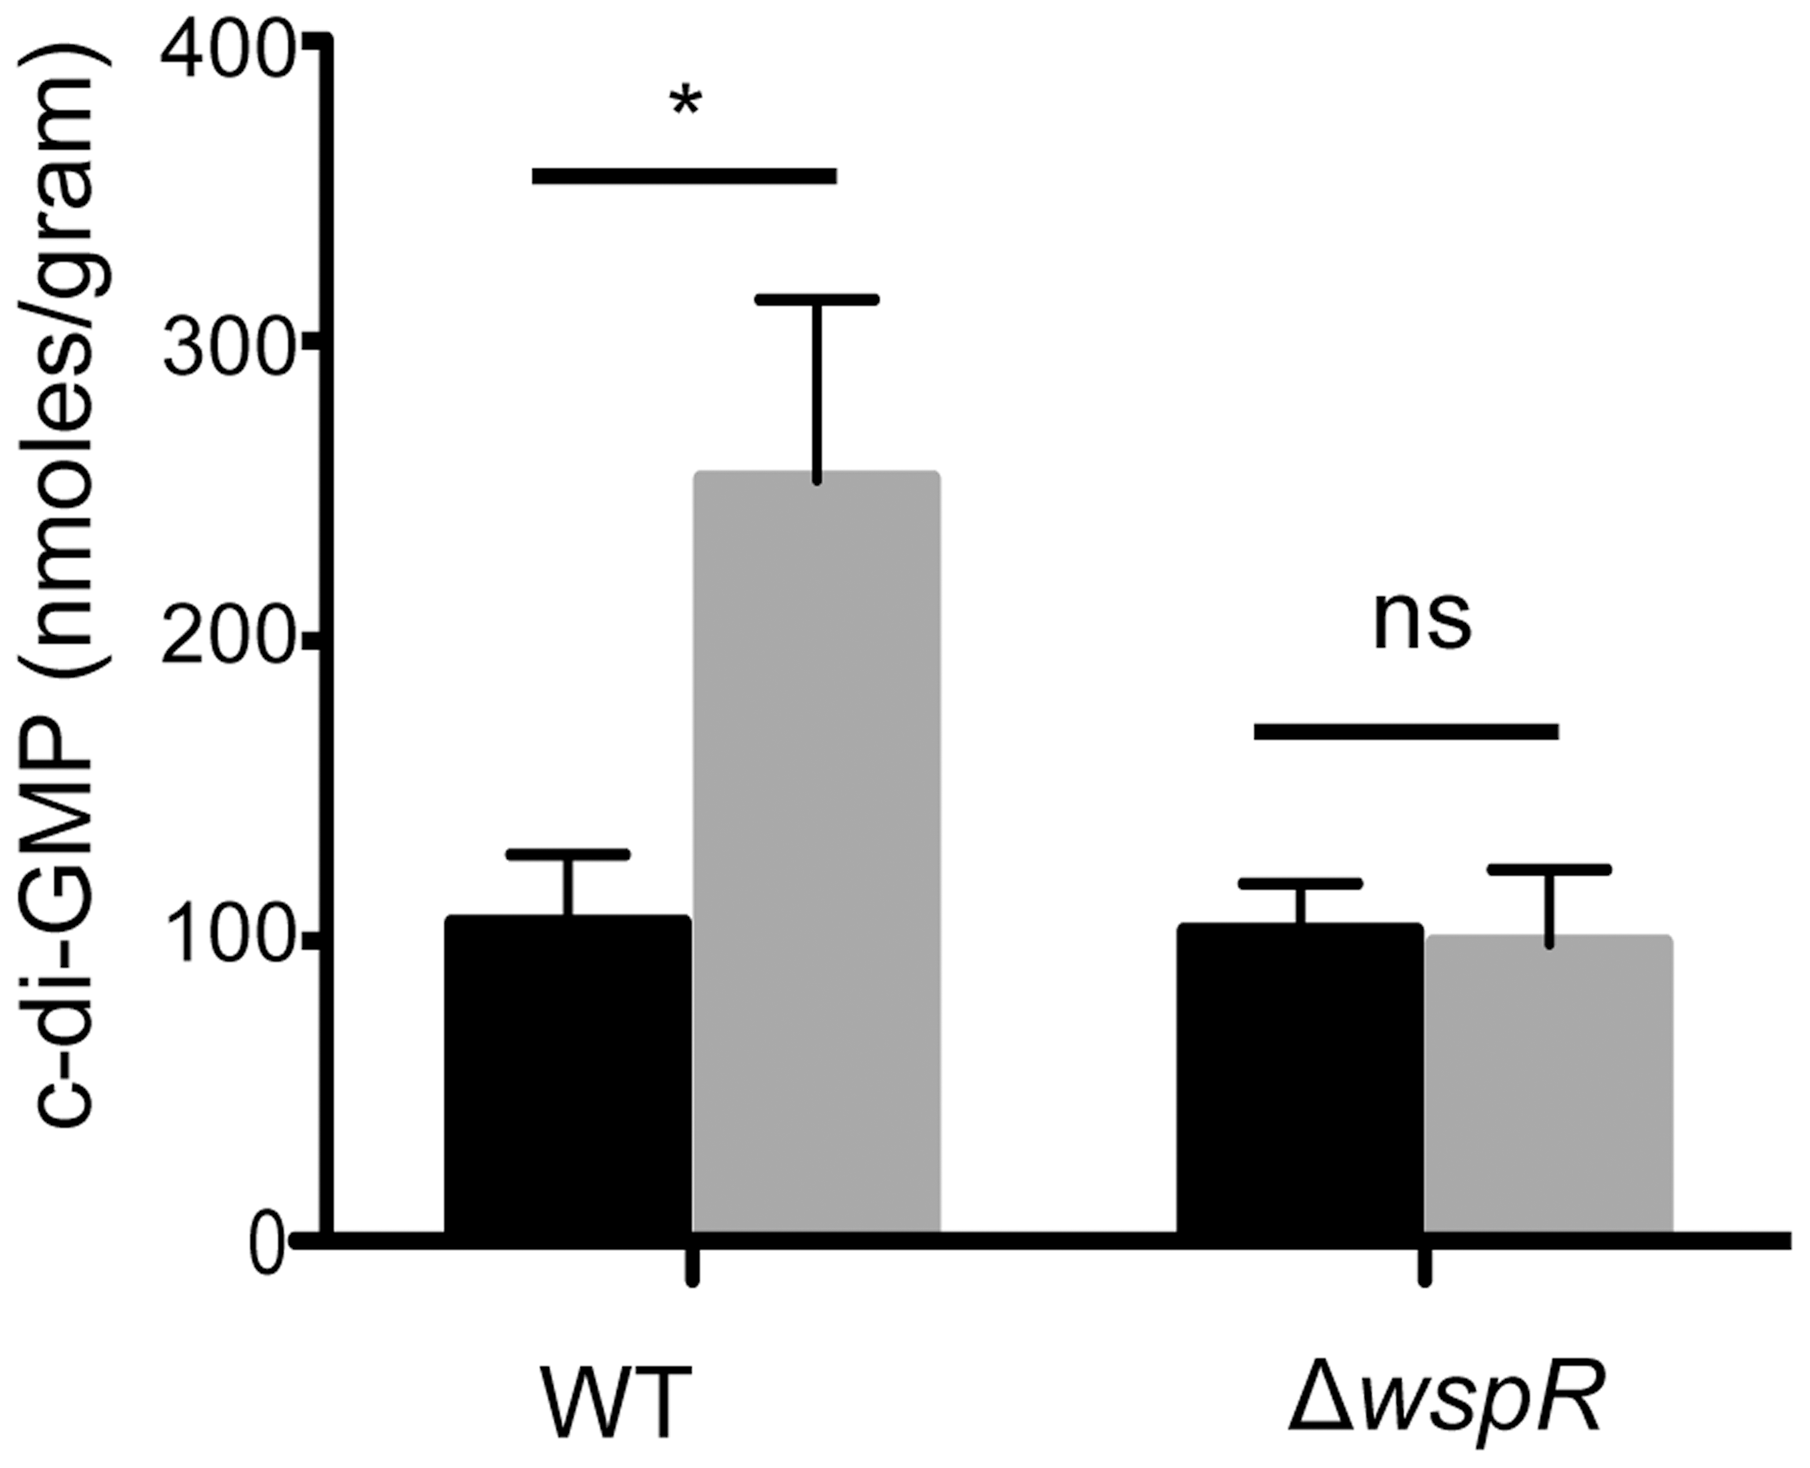 Ethanol increases c-di-GMP levels in <i>P. aeruginosa</i> strain PA14 WT but not in a Δ<i>wspR</i> mutant.